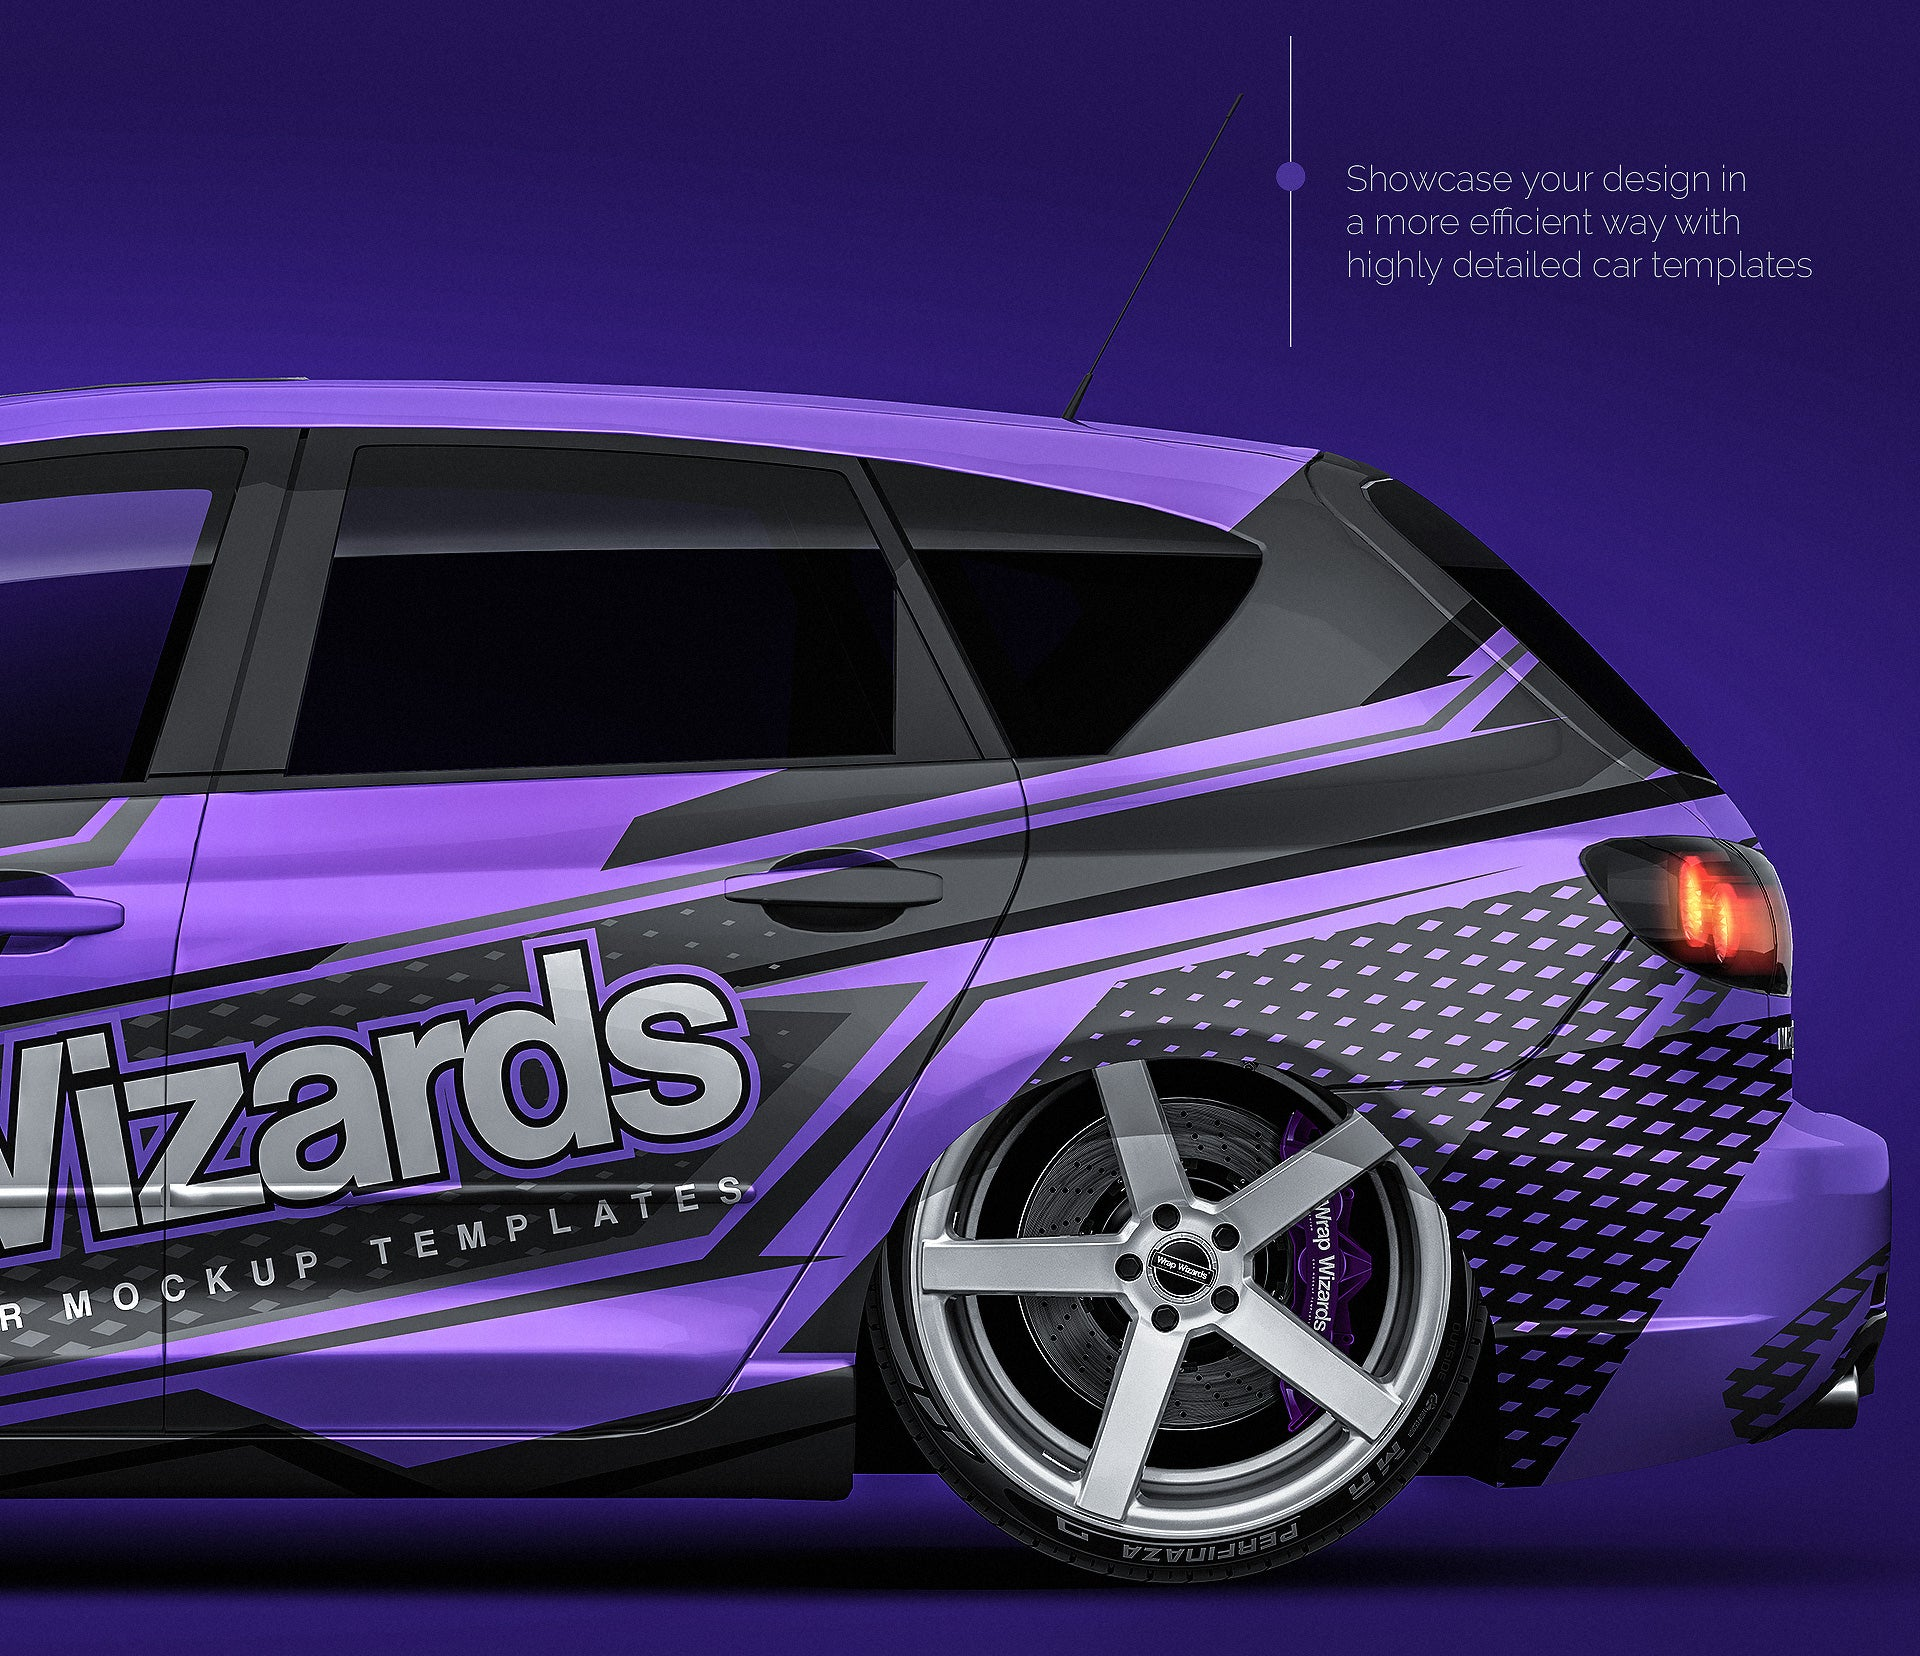 Mazda 3 2007 - all sides Car Mockup Template.psd